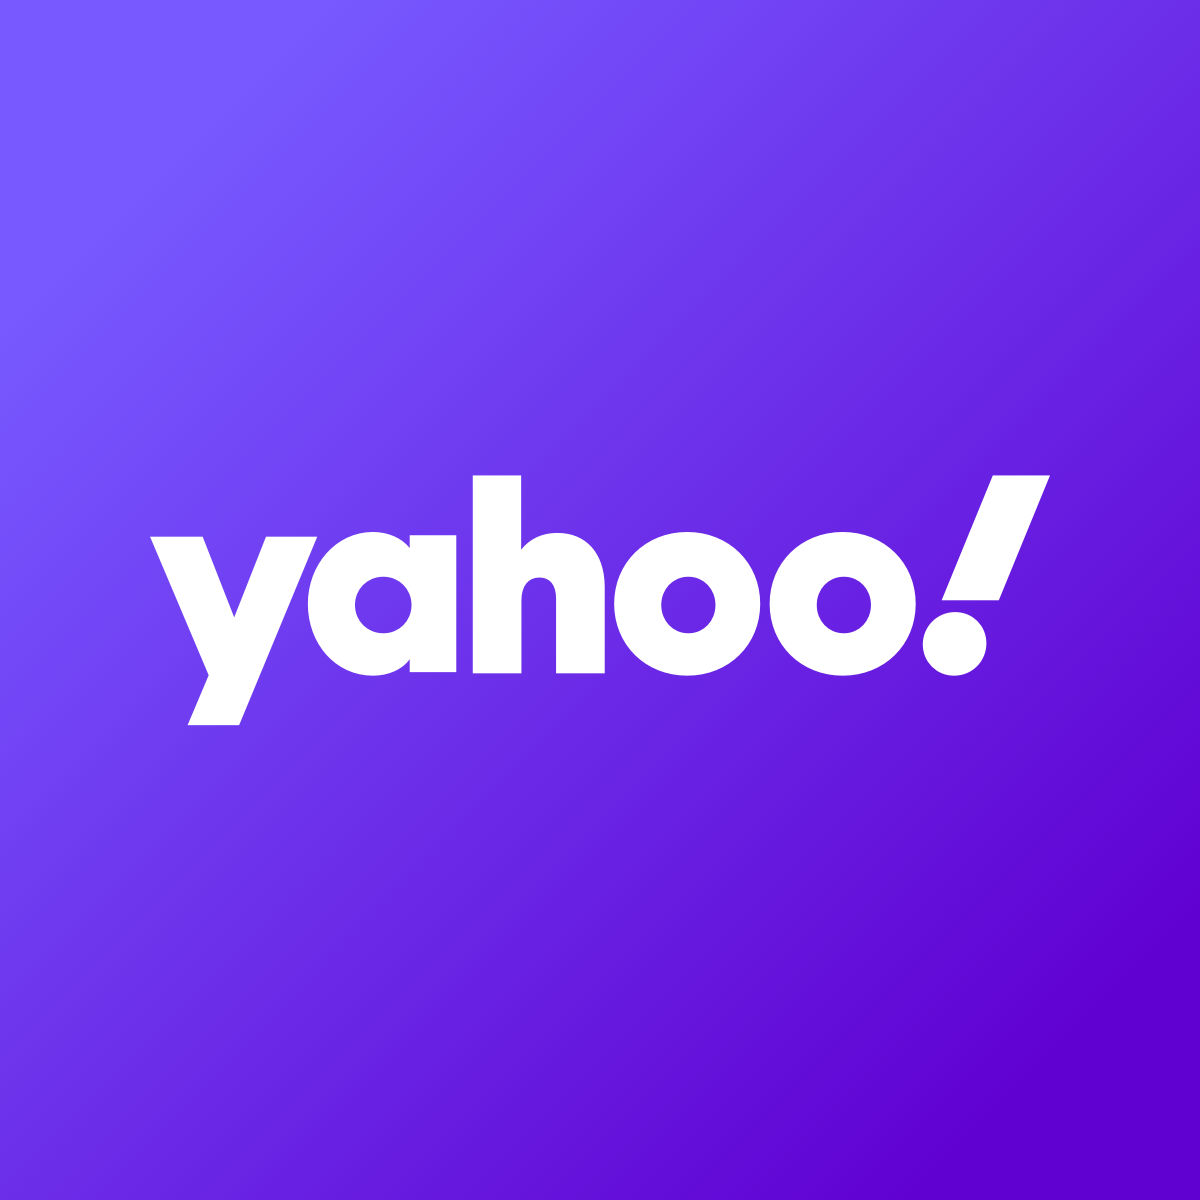 yahoo default logo 1200x1200 - In 2 years, Florida 'red flag' law removes hundreds of guns